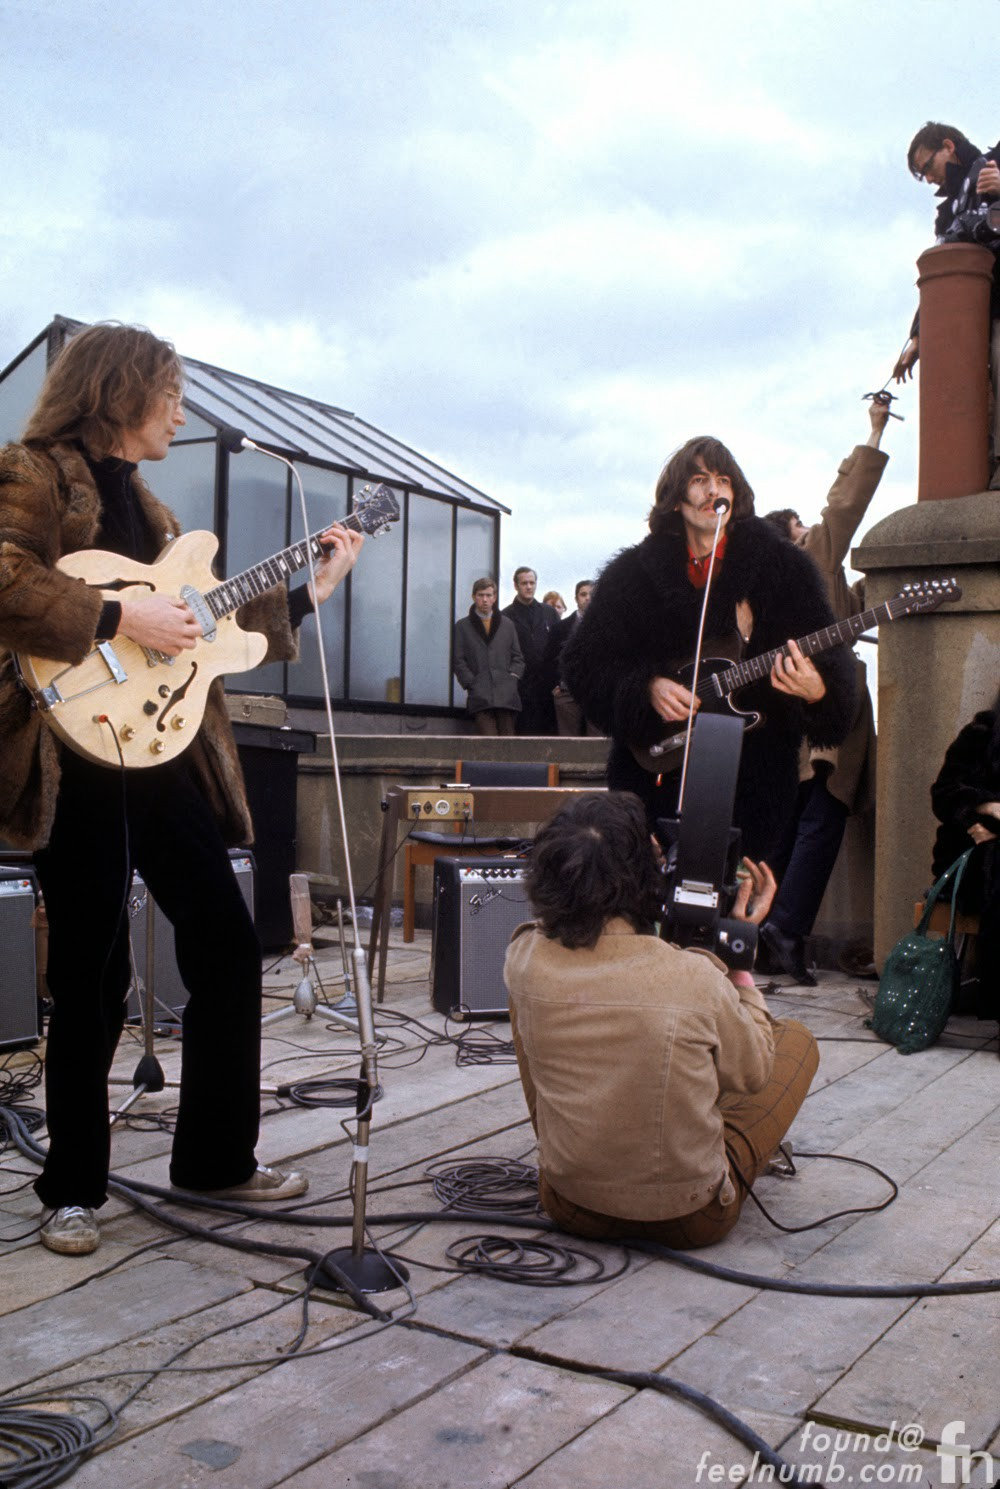 George Harrison The Beatles Rooftop Concert January 30, 1969